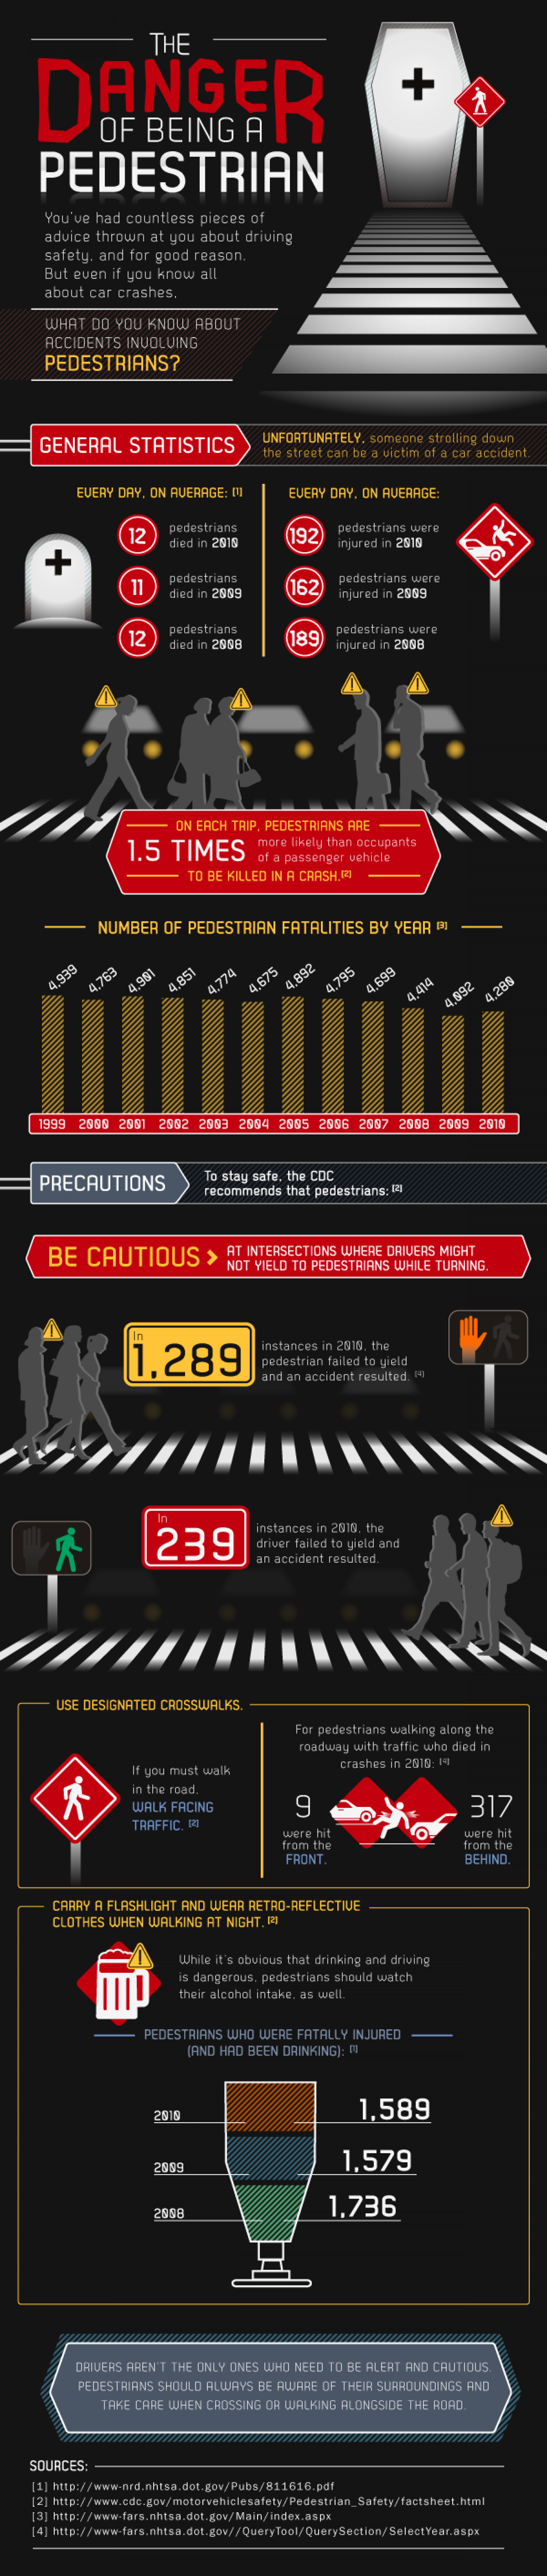 The Danger of Being a Pedestrian Infographic